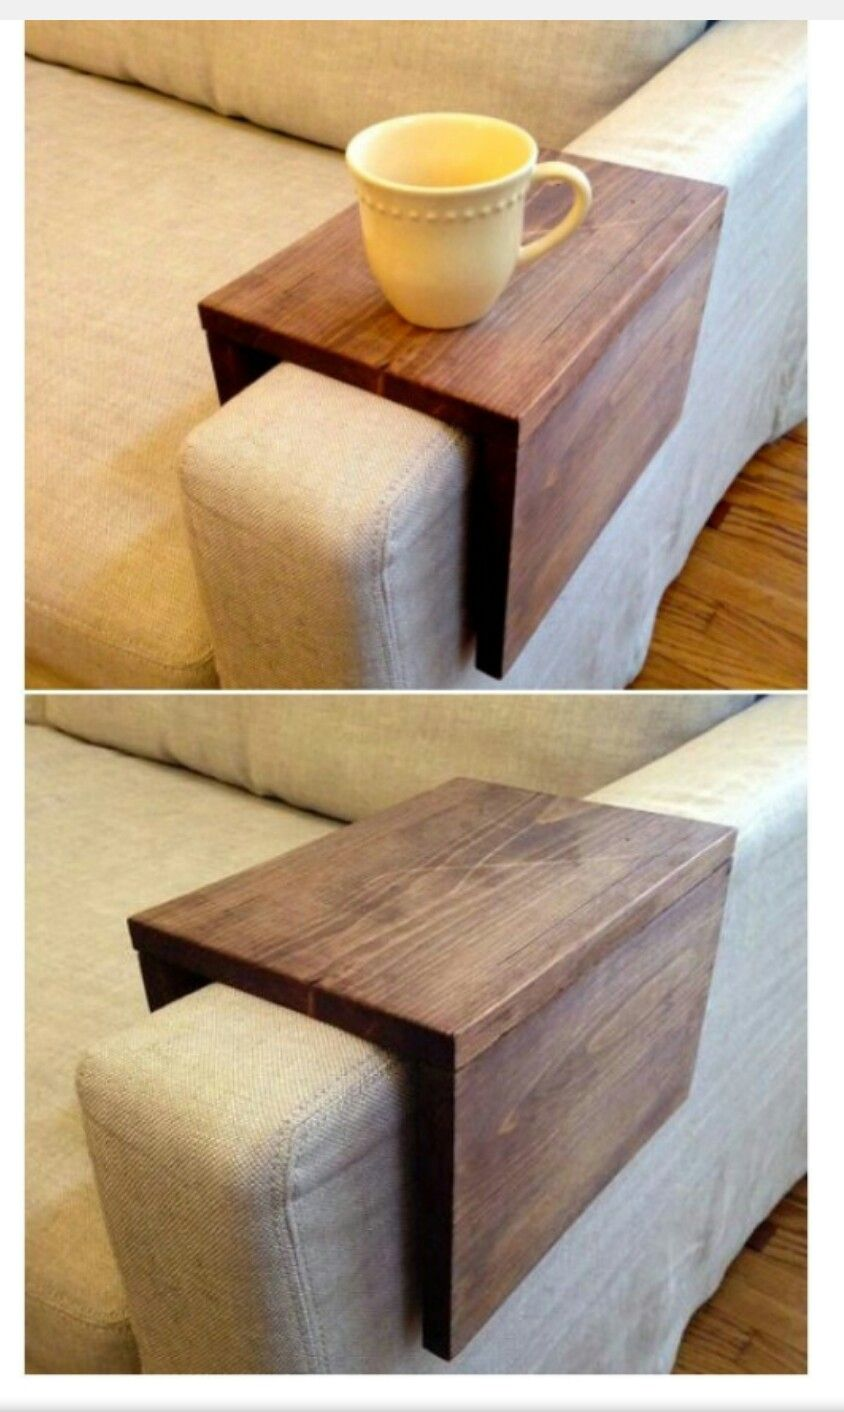 Pin by on pinterest nice t heres a do it yourself item for living room couch a over the armrest coffee cup rest solutioingenieria Gallery